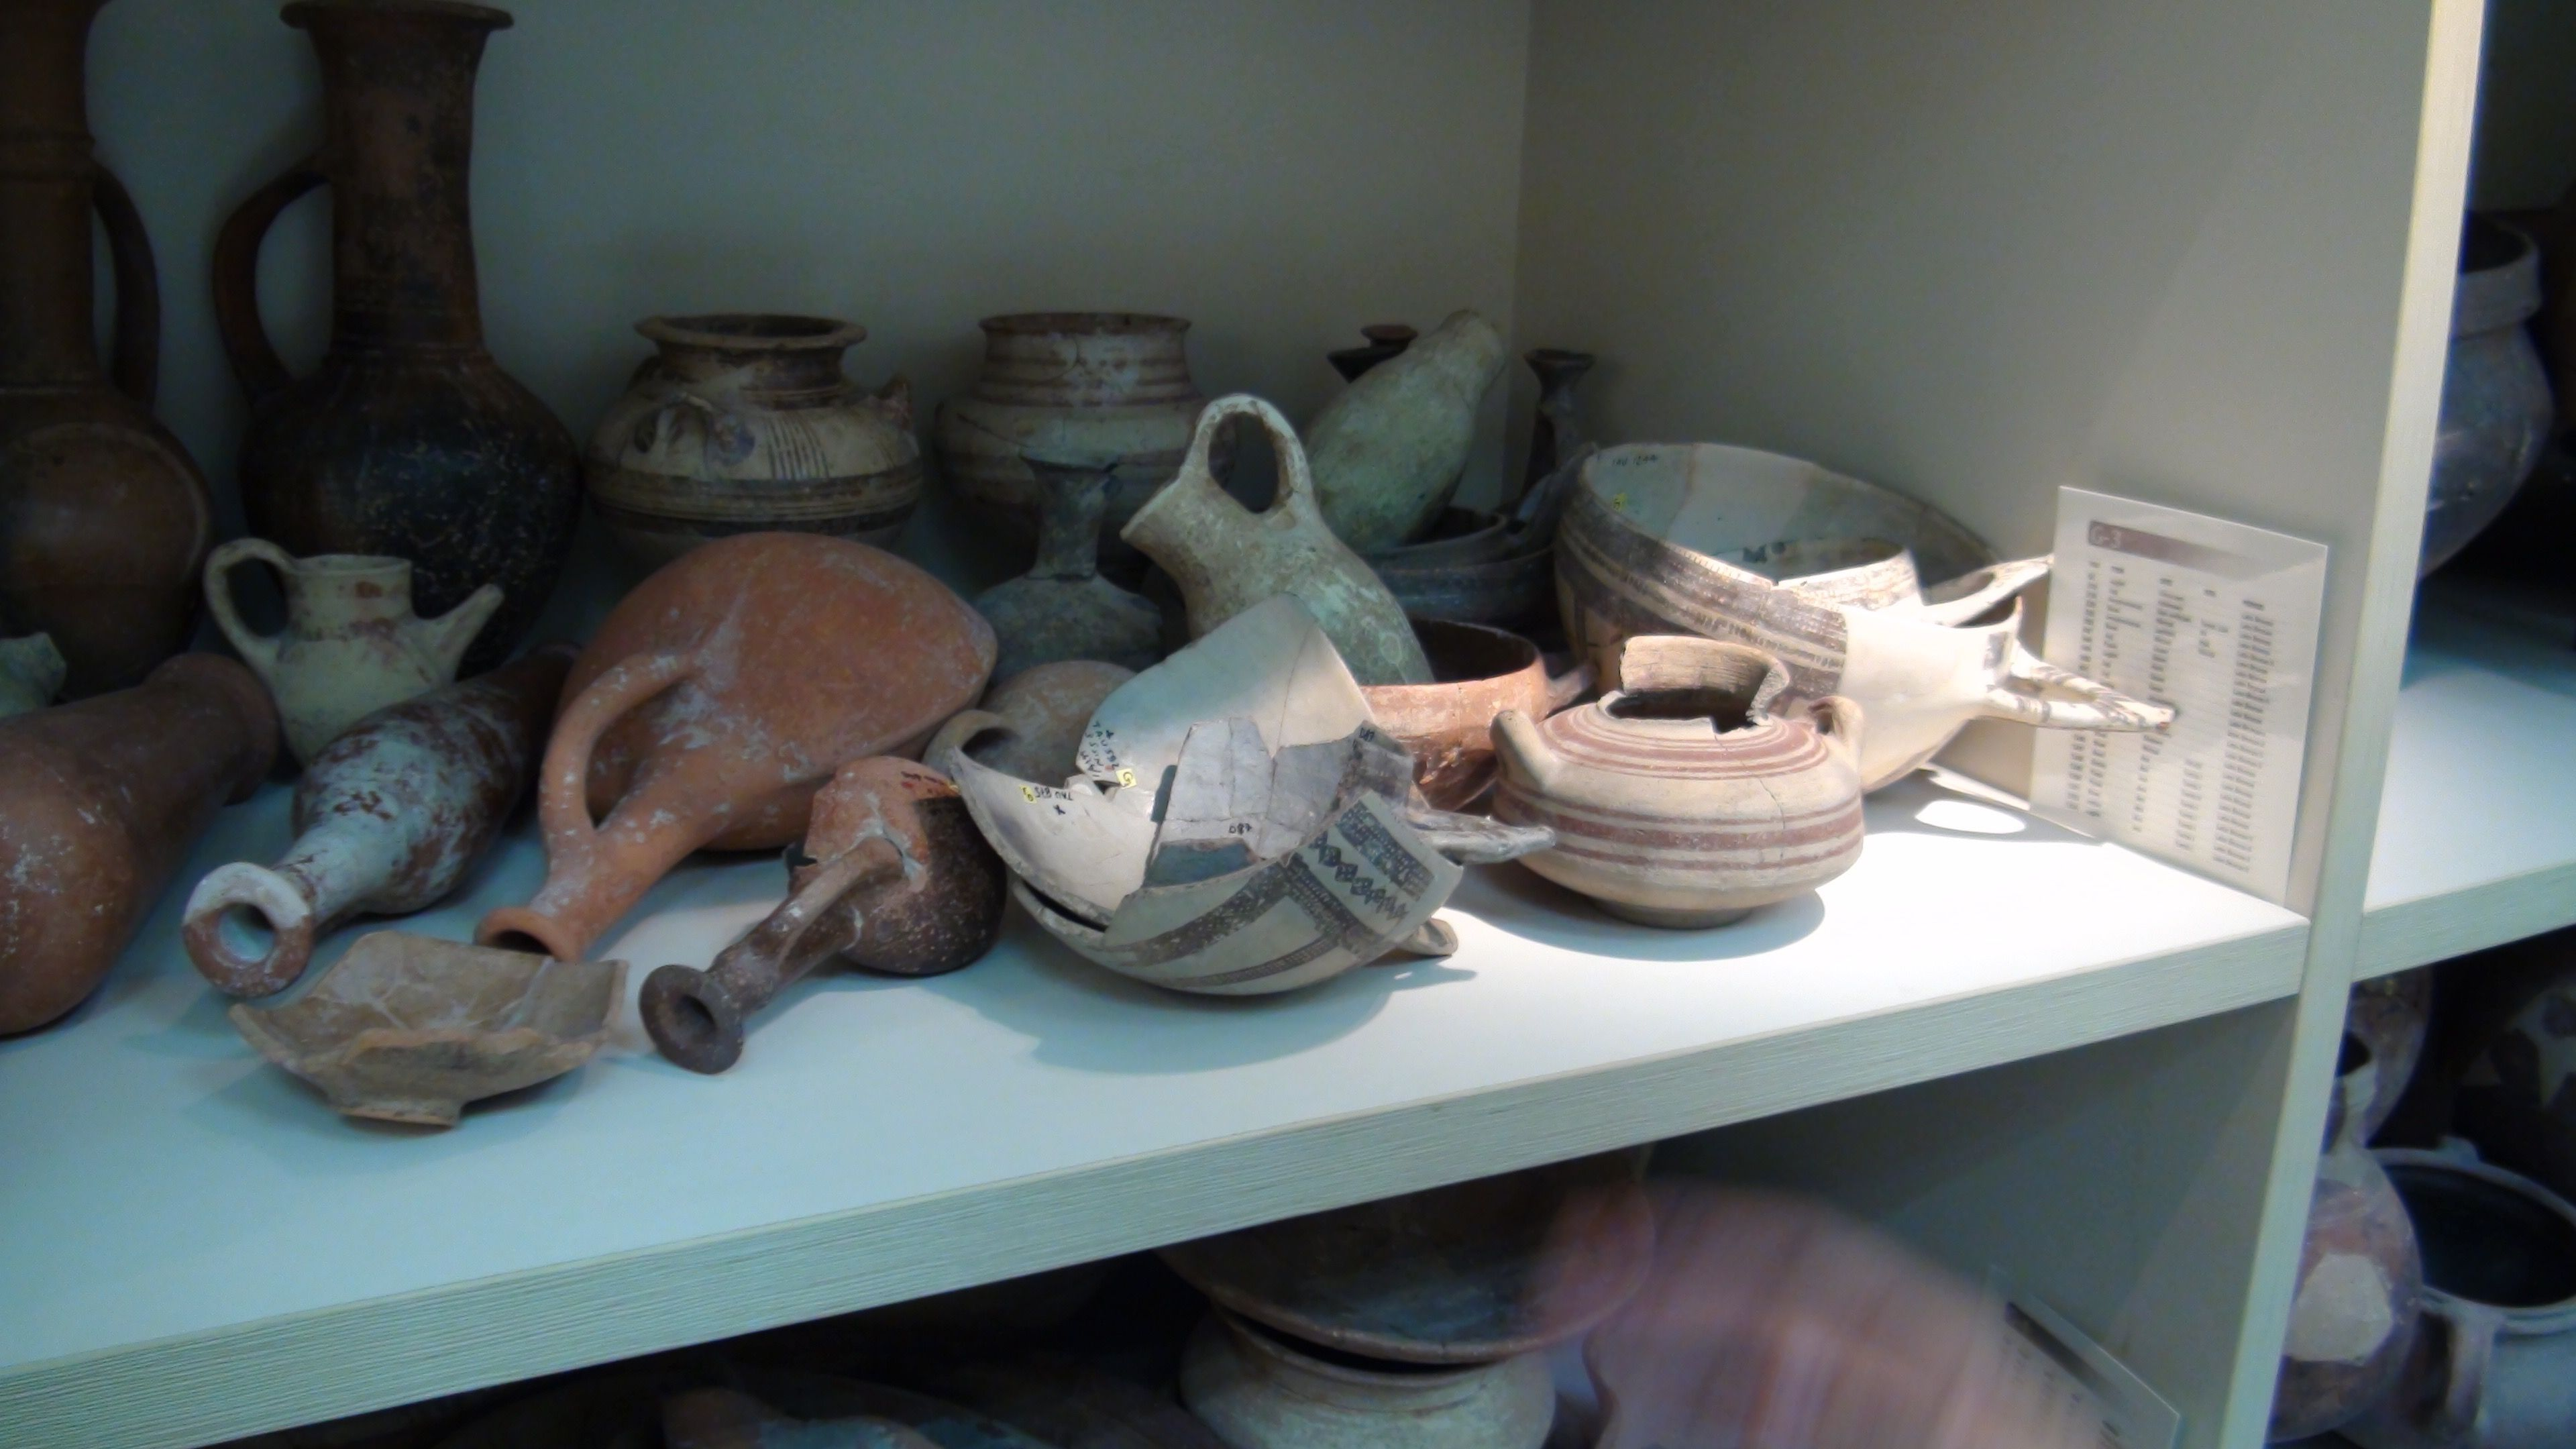 Bronze Age Pottery in the TAU Educational Collection - Used for teaching students on the material culutures of the Land of Israel